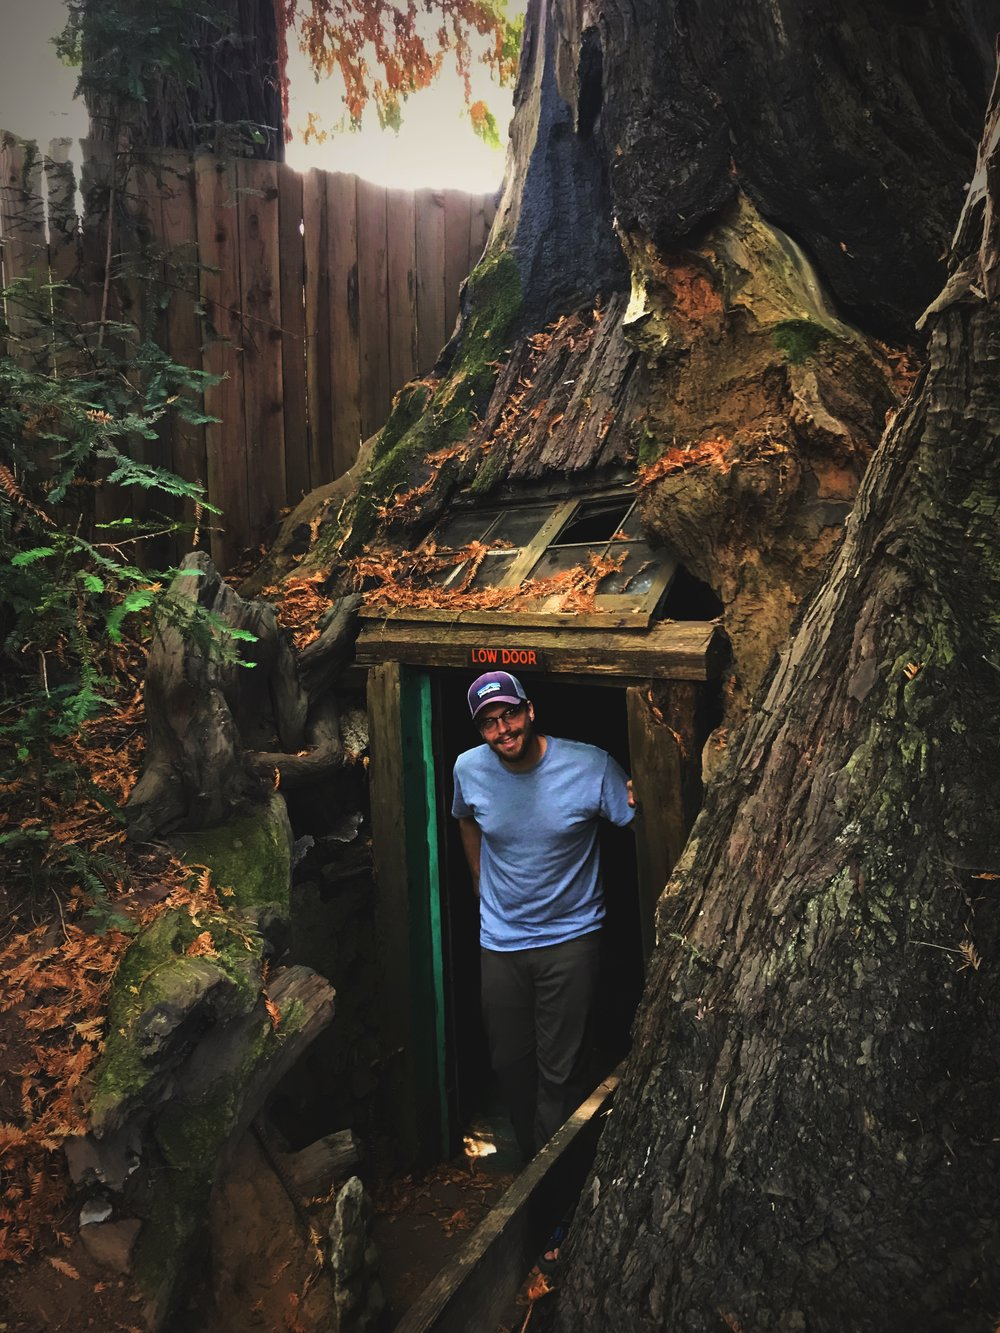 Ian emerging from the dark 20-foot-round, hollowed out stump house.